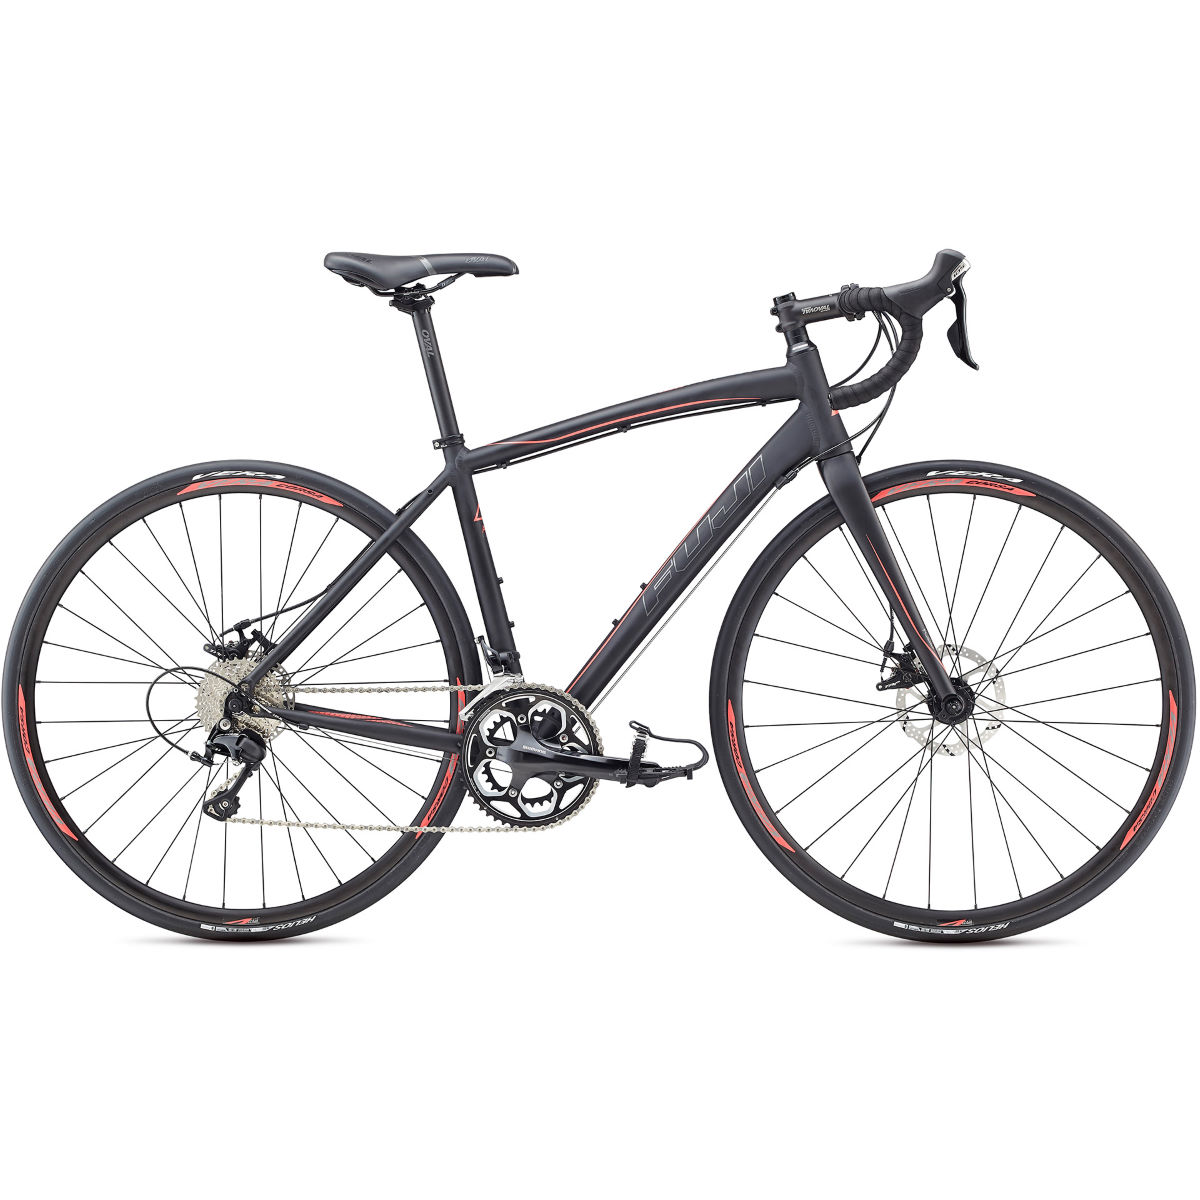 Fuji Finest 1.1 Disc Road Bike (2017) - Bicicletas de carretera